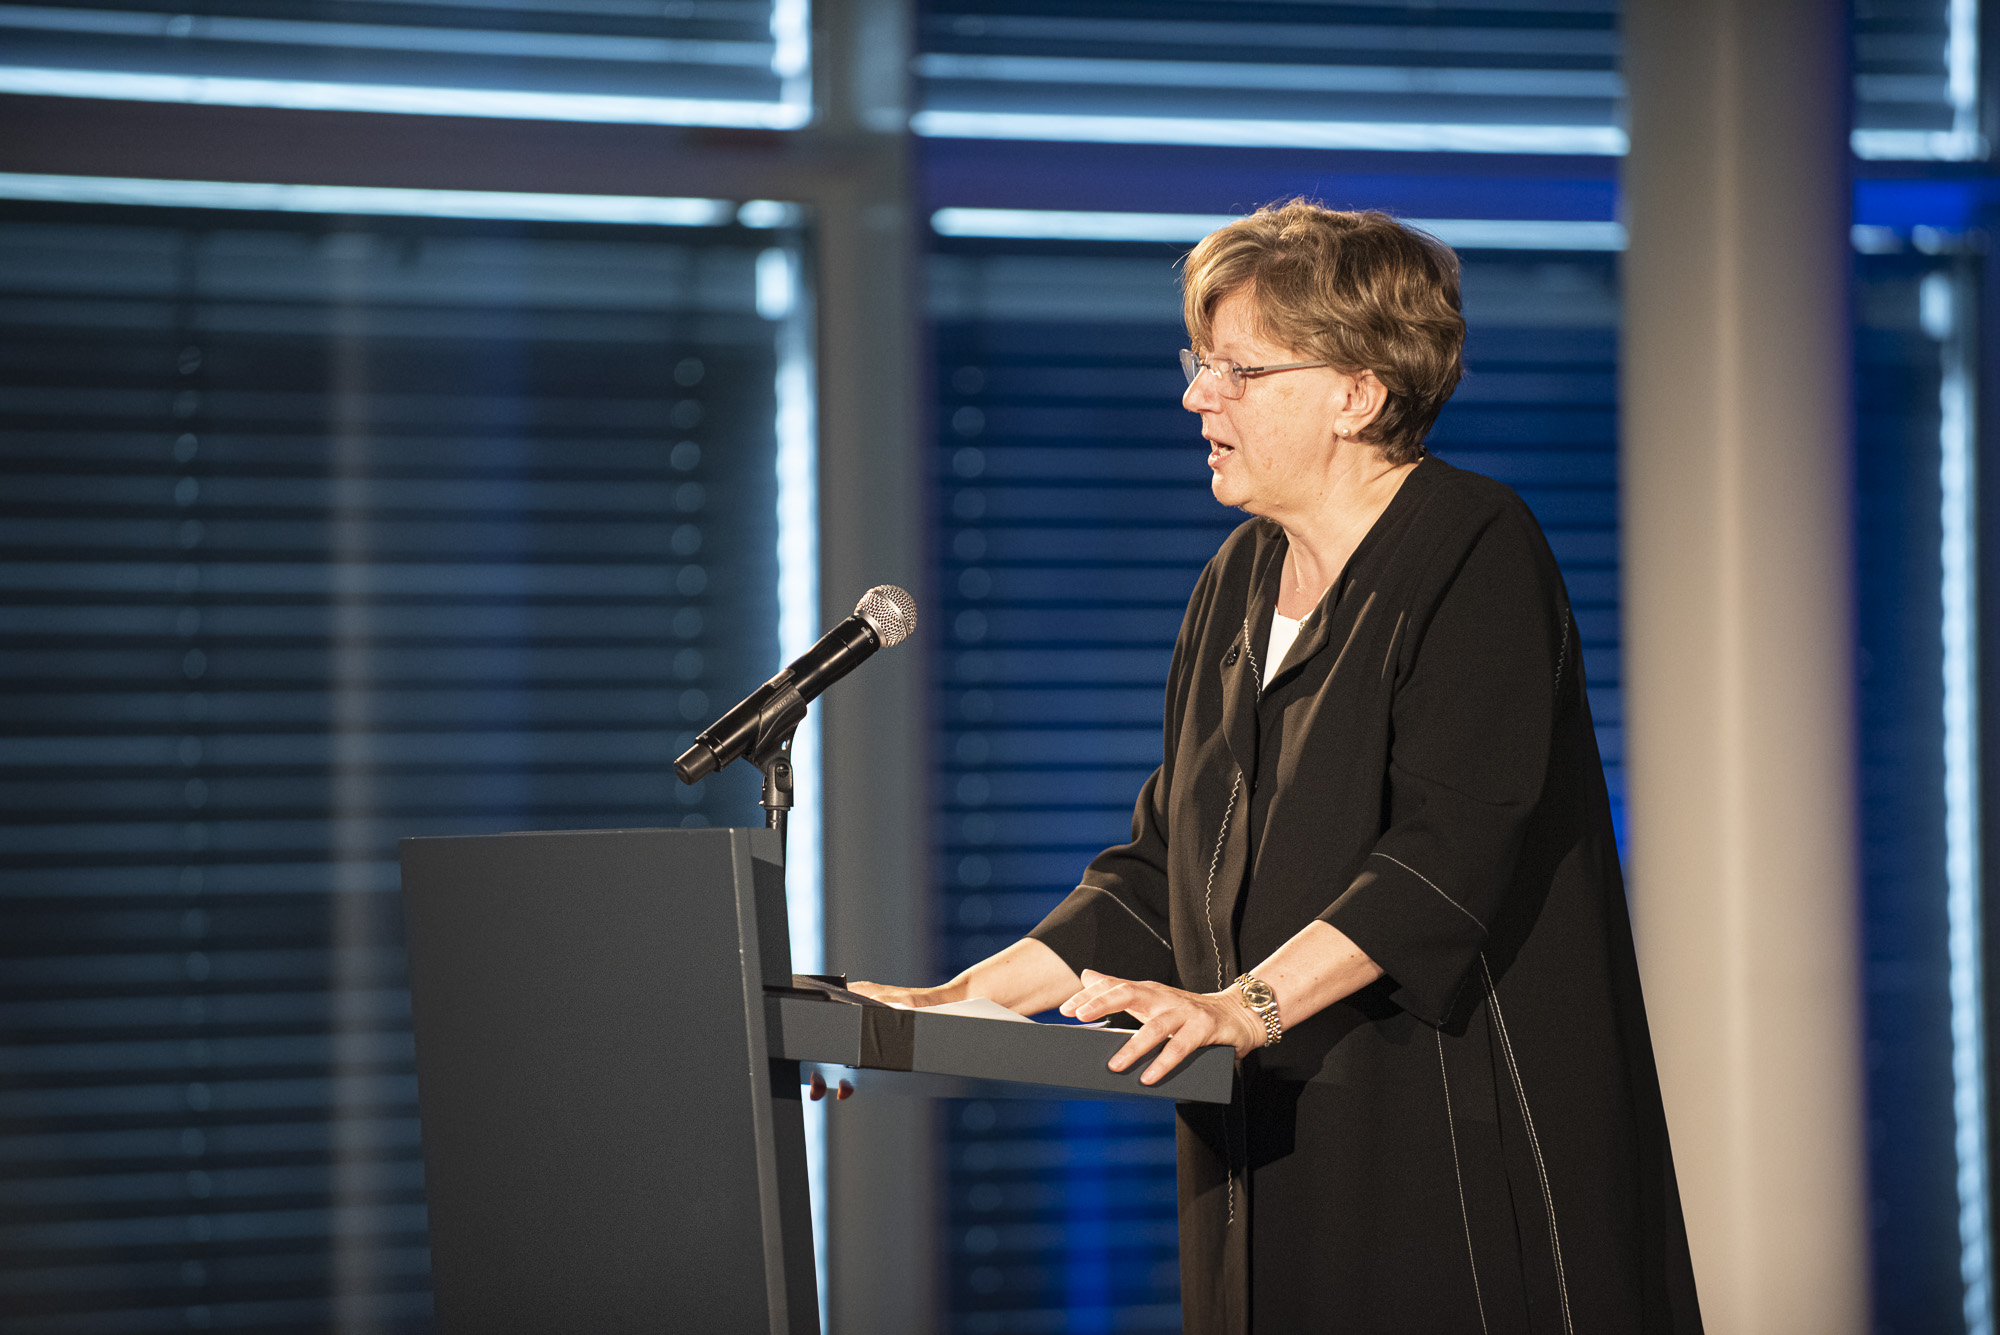 Swiss Design Awards ceremony, Director of the Federal Office of Culture, Isabelle Chassot